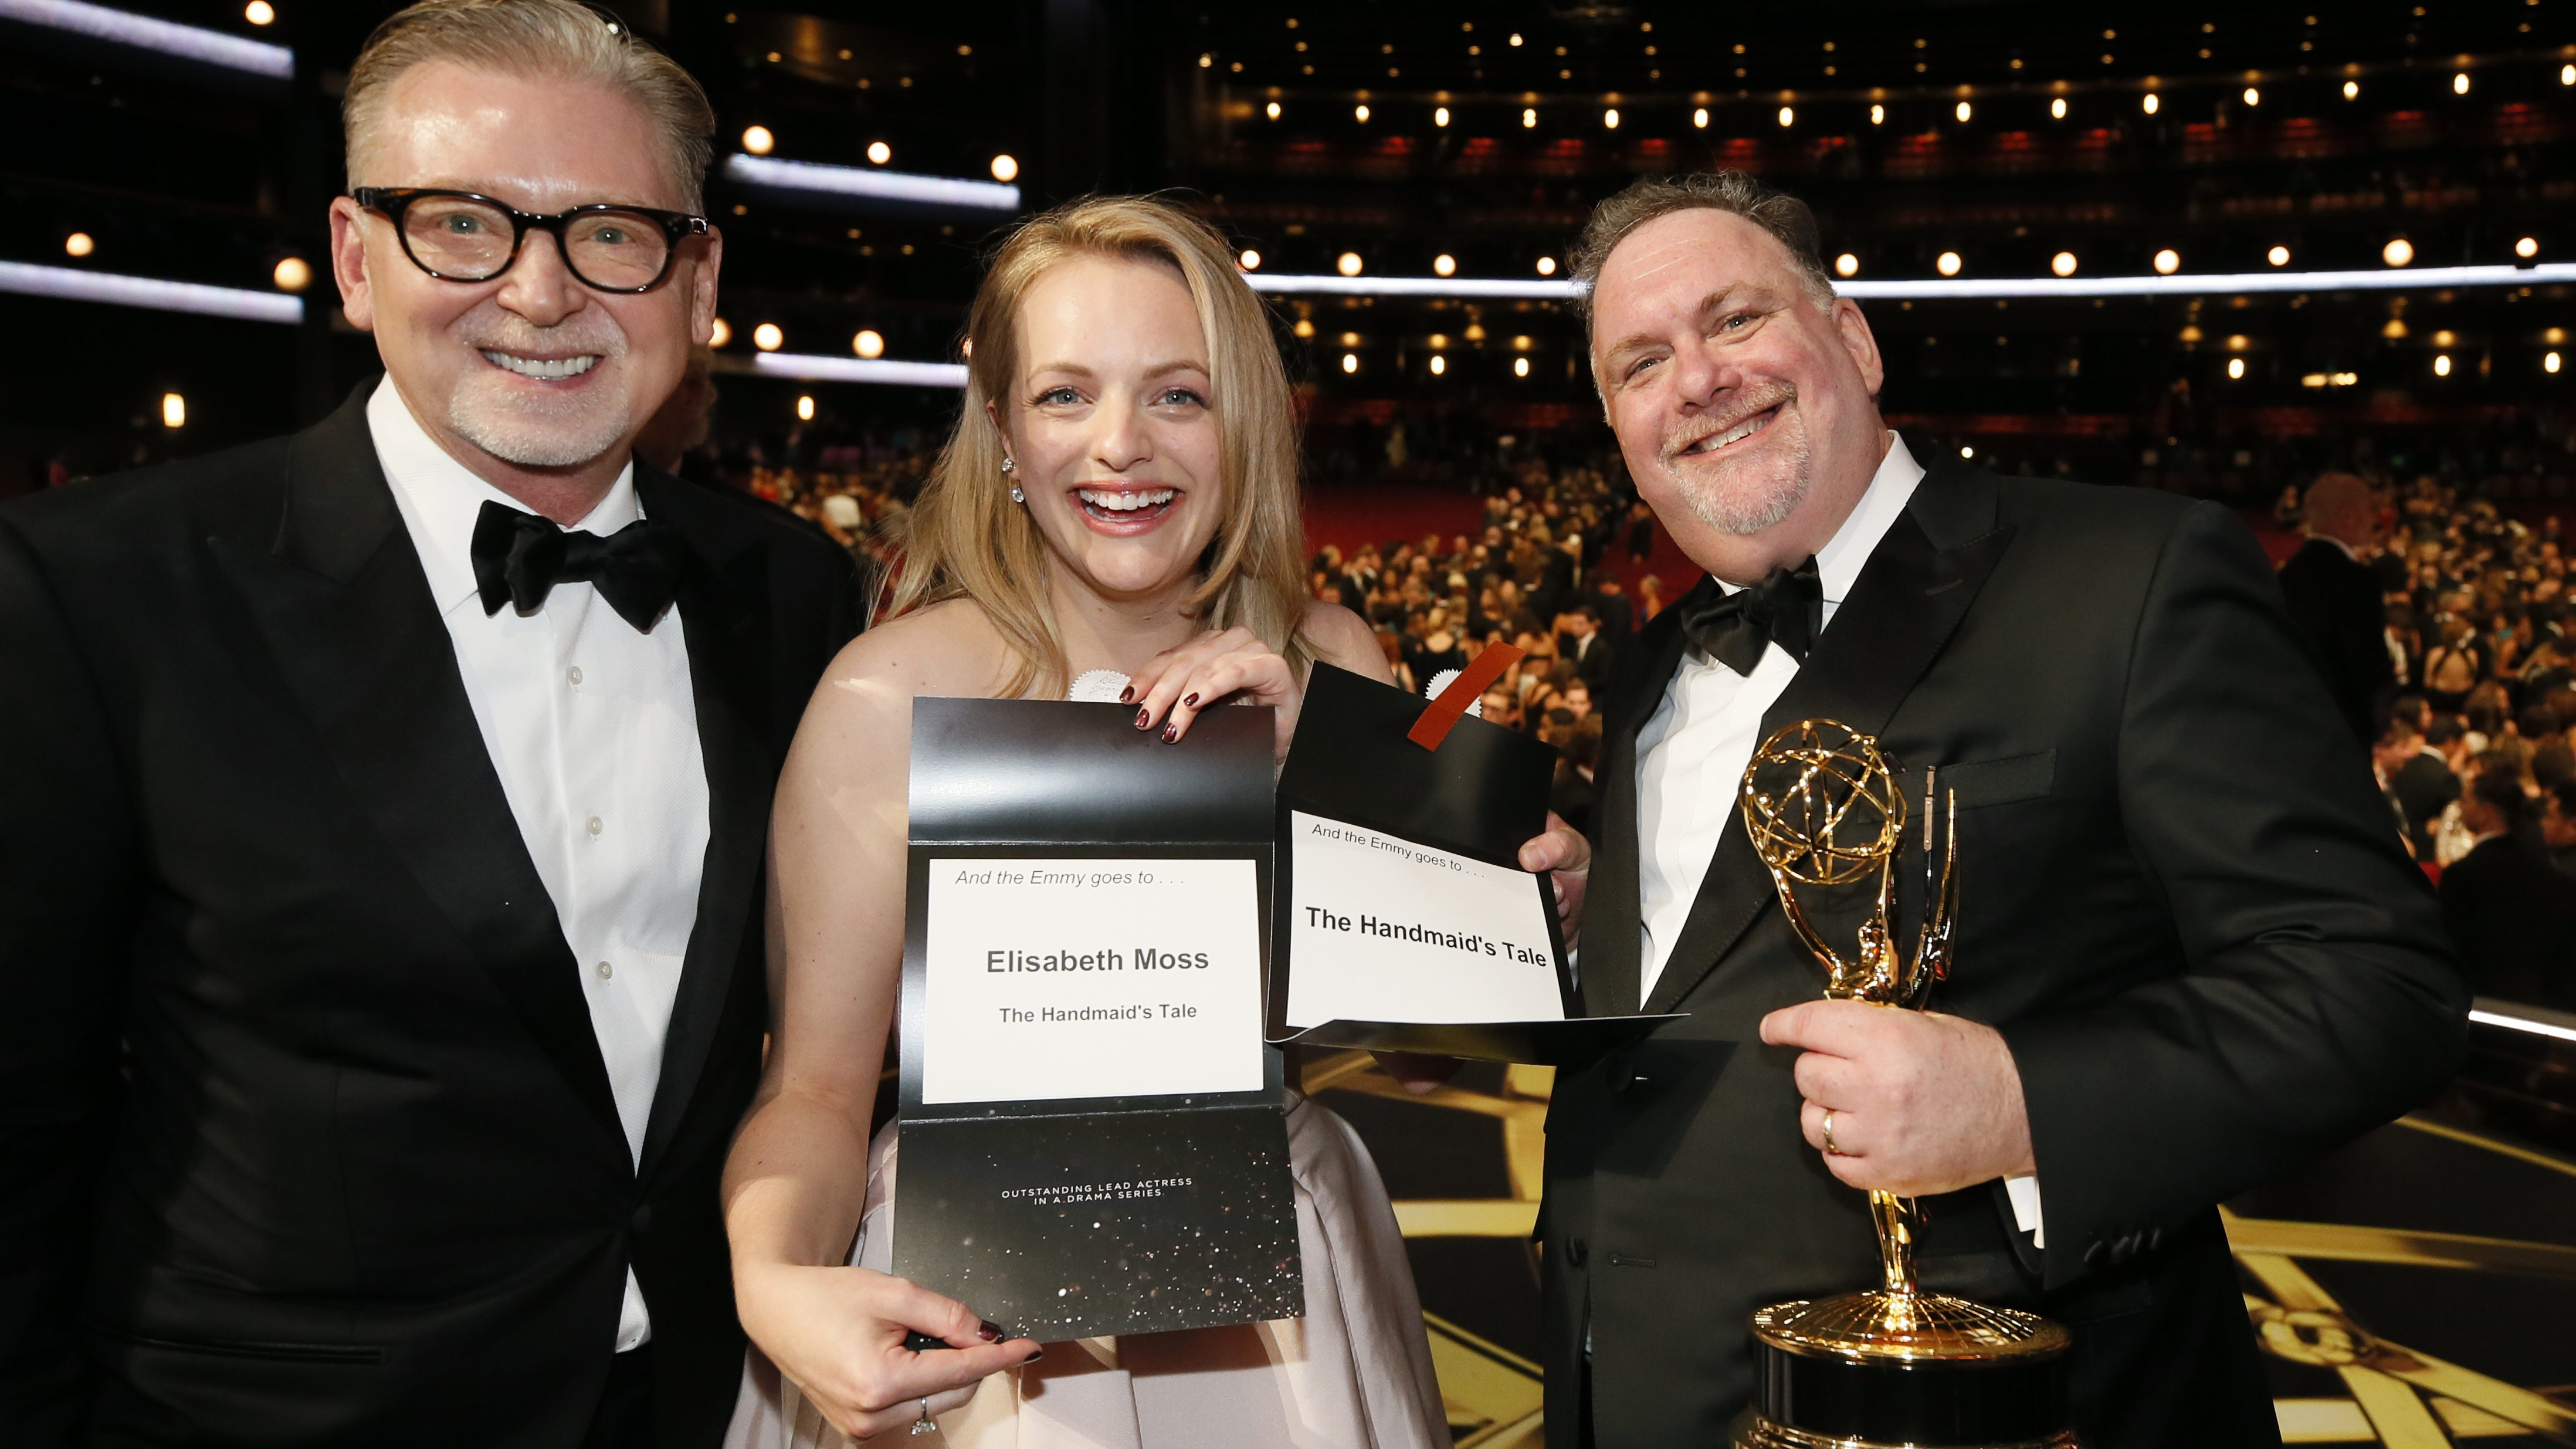 """Warren Littlefield, from left, winner of the award for outstanding drama series for """"The Handmaid's Tale"""", from left, Elizabeth Moss, winner of the award for outstanding lead actress in a drama series for """"The Handmaid's Tale"""" and Bruce Miller, winner award for outstanding drama series for """"The Handmaid's Tale"""" pose on the red carpet stage at the 69th Primetime Emmy Awards on Sunday, Sept. 17, 2017, at the Microsoft Theater in Los Angeles. (Photo by Danny Moloshok/Invision for the Television Academy/AP Images)"""